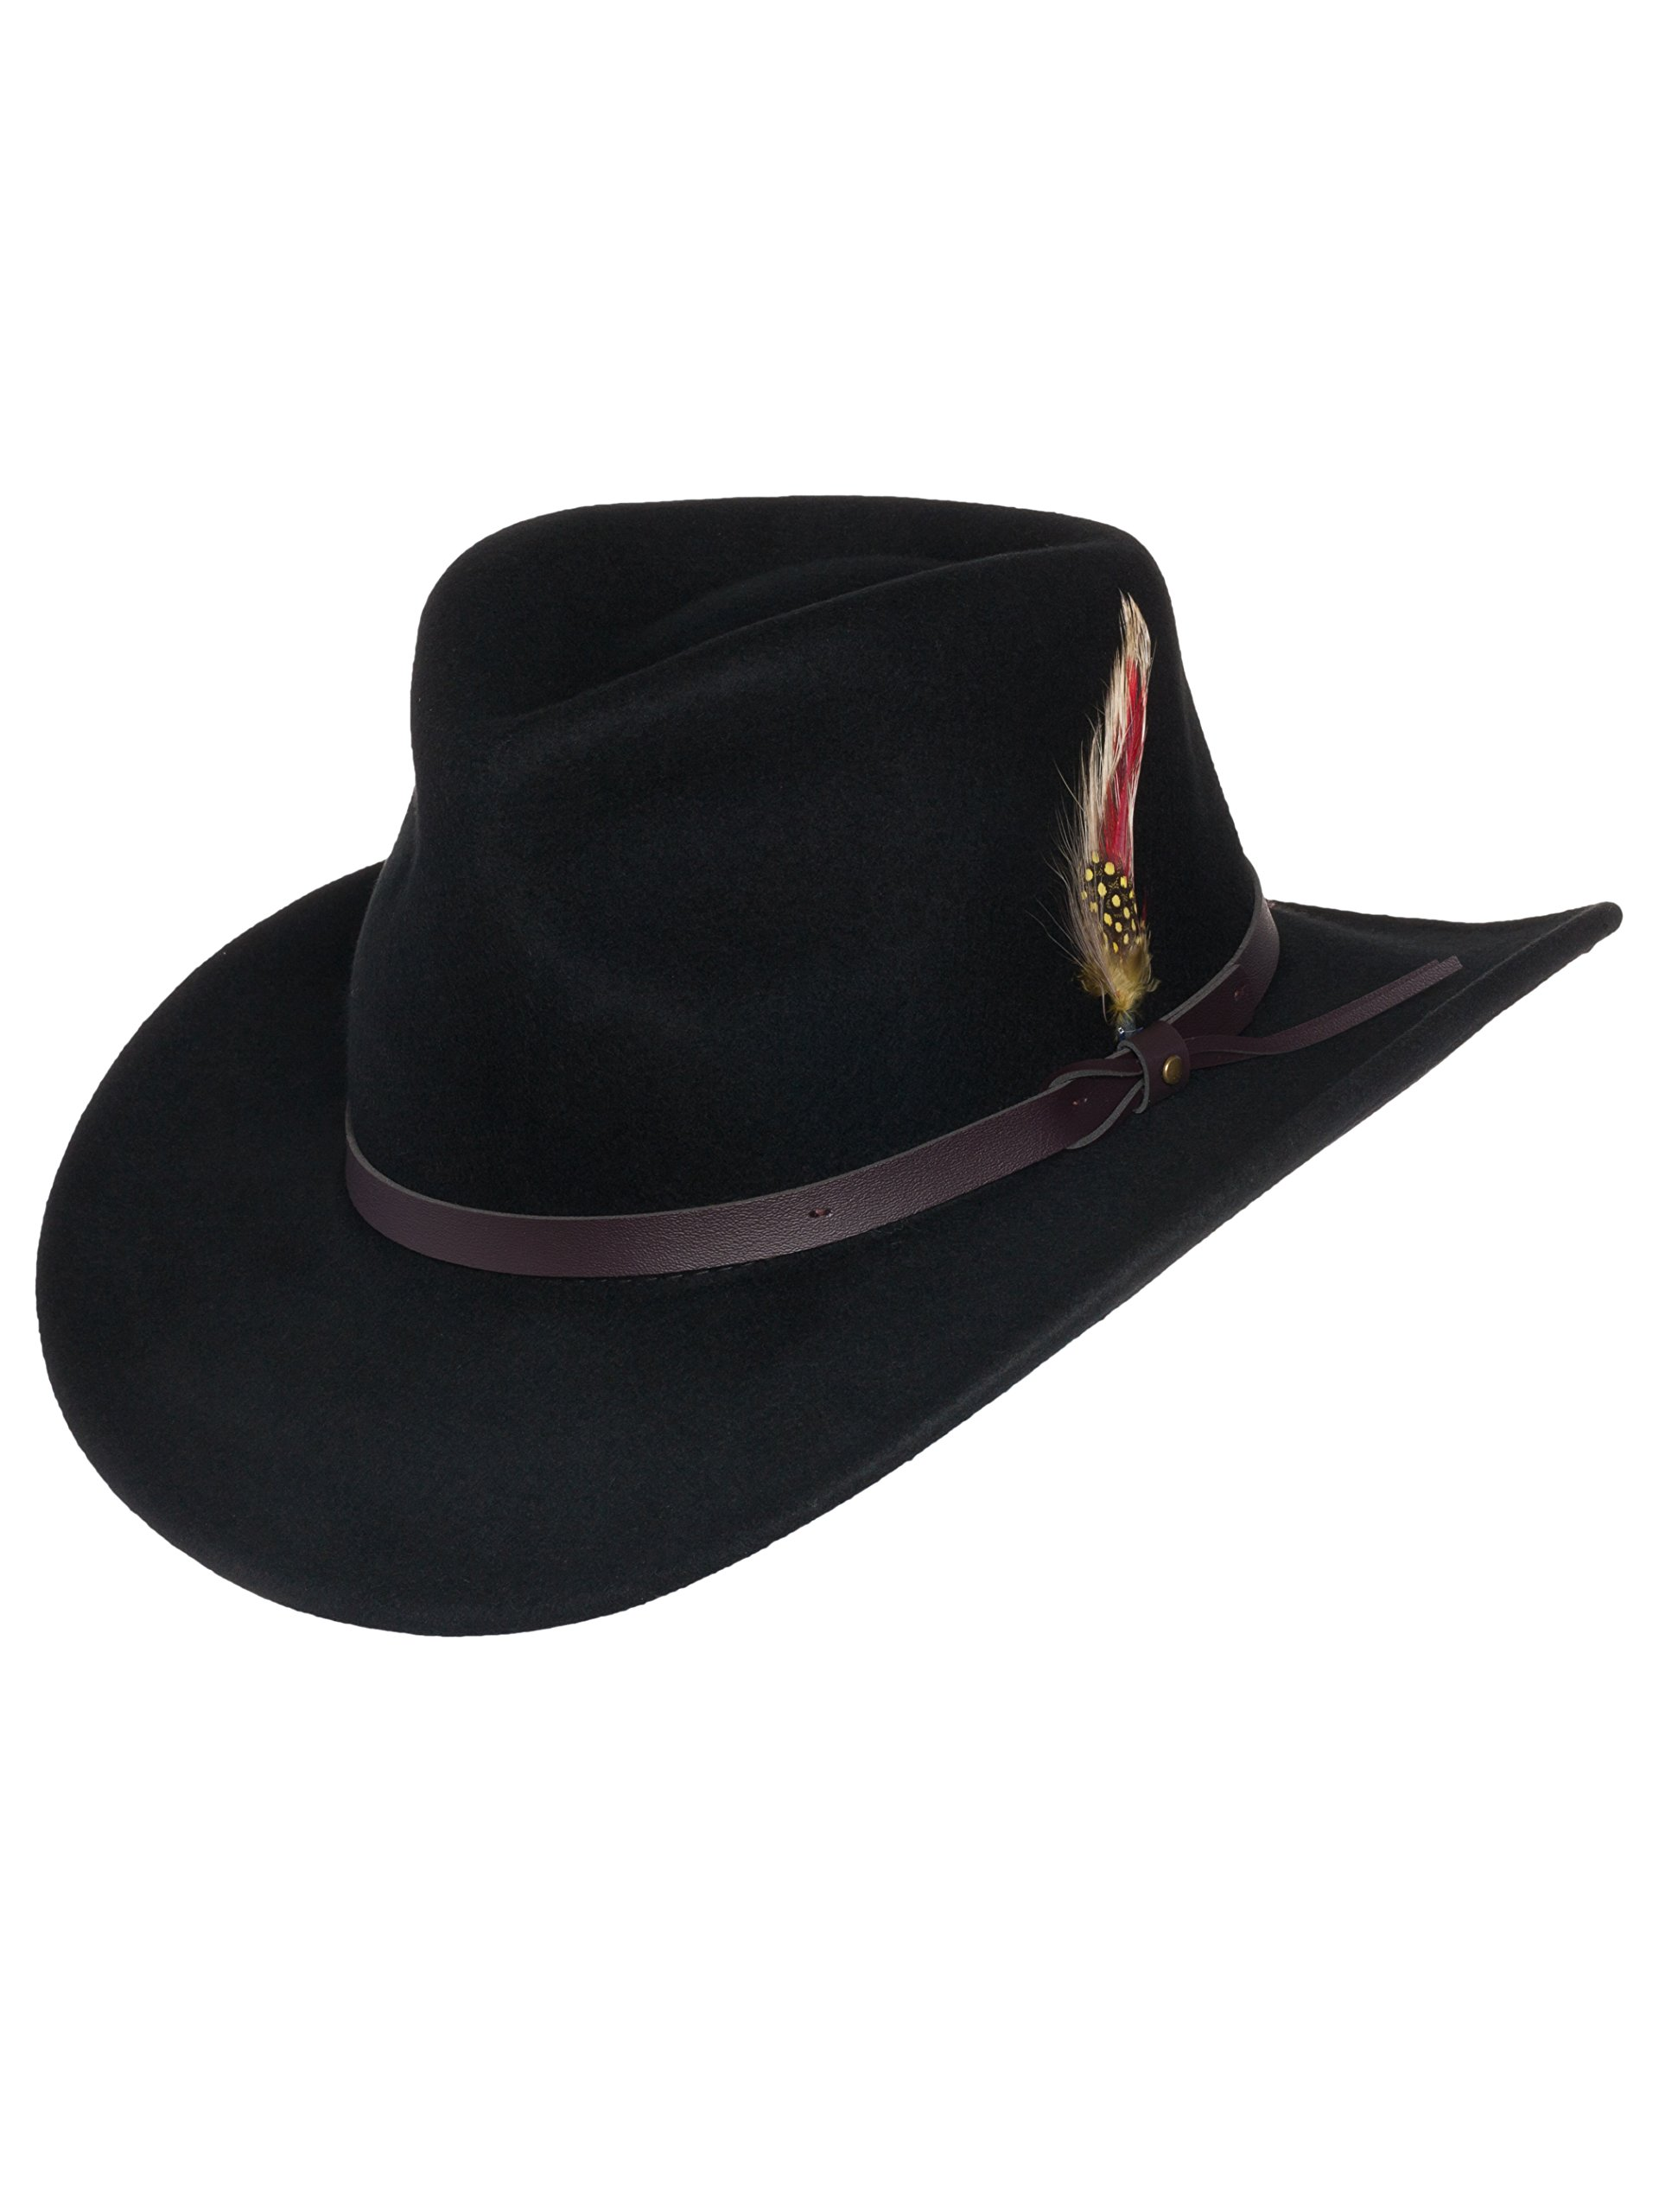 Men's Outback Wool Cowboy Hat Montana Black Crushable Western Felt by Silver Canyon, Black, Medium